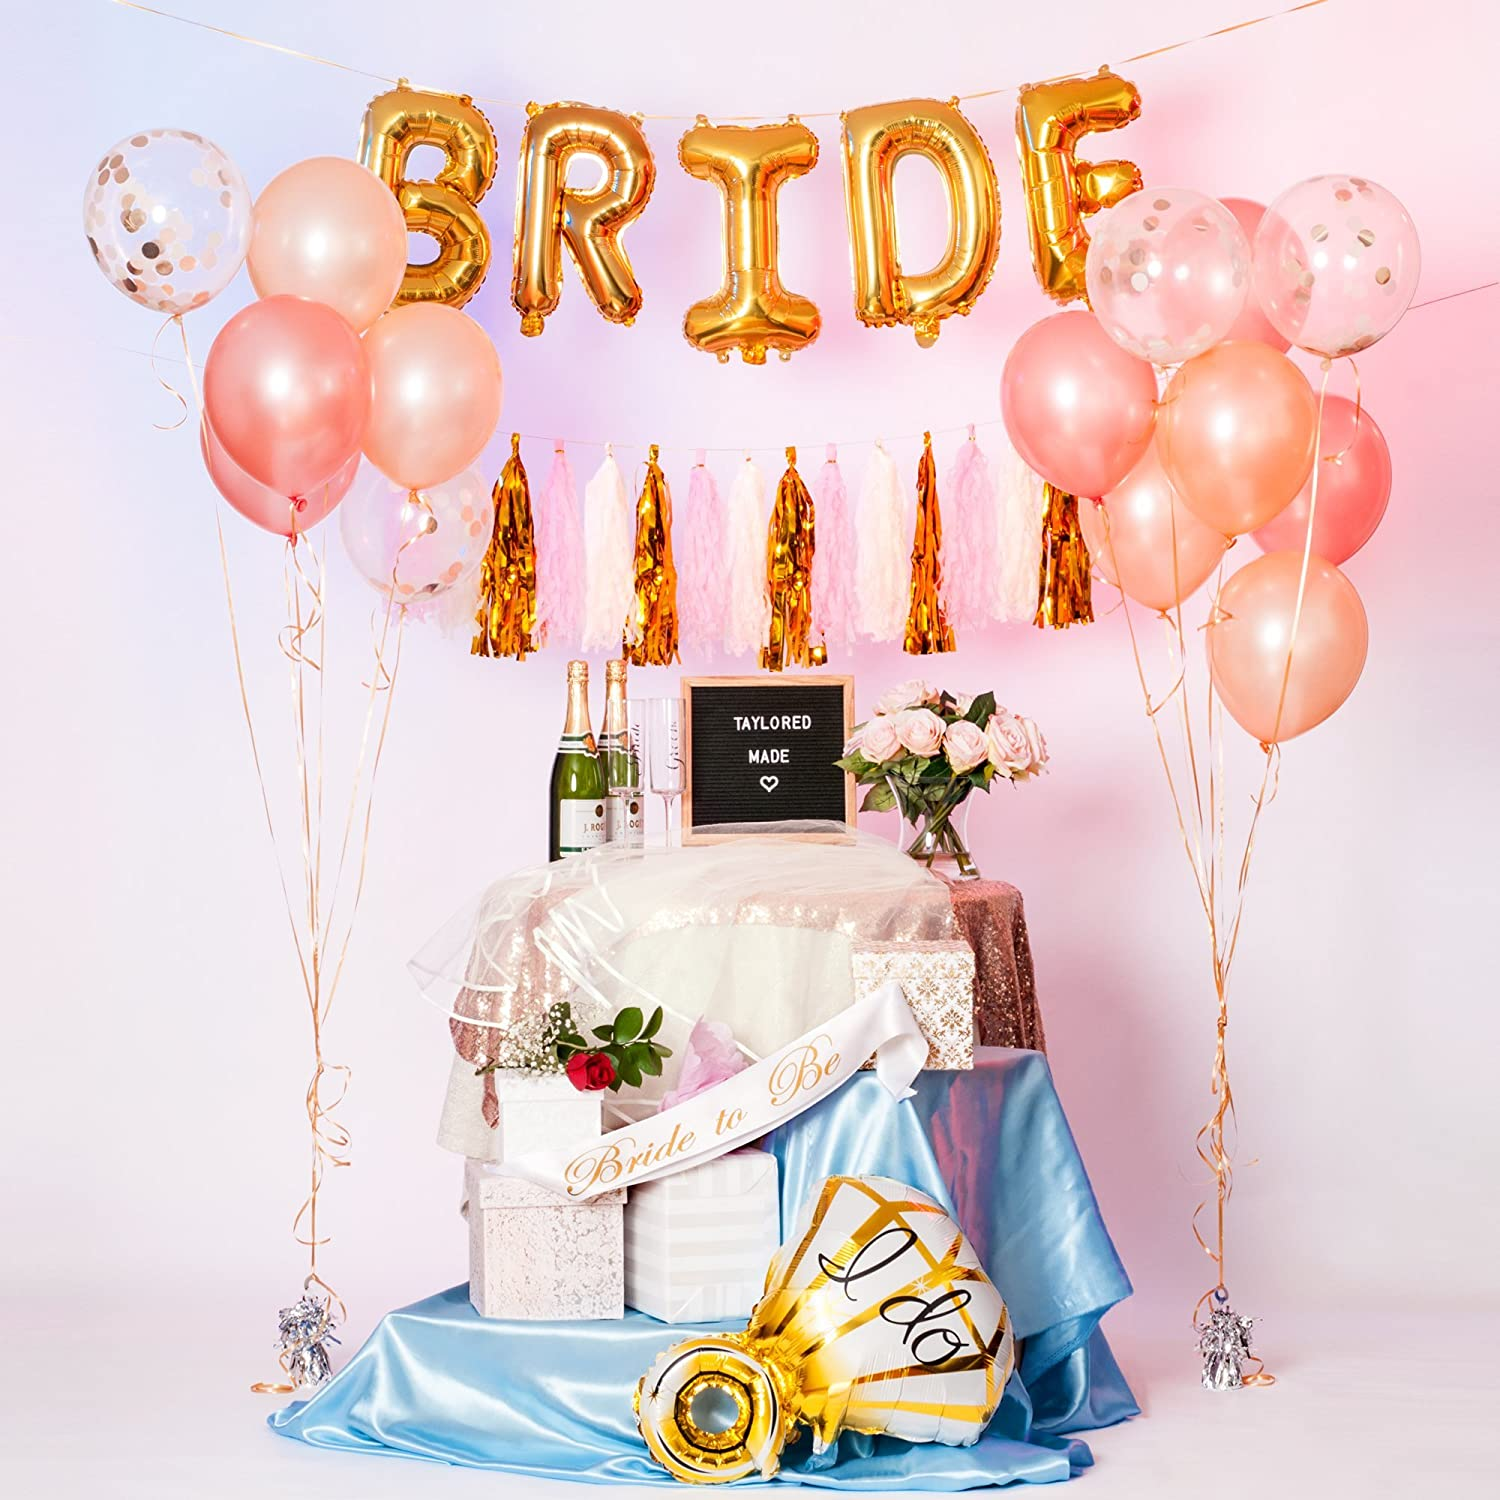 fcf48754b7f Bachelorette Party Decorations and Photo Props  Bridal Shower Decorations    Bachelorette Party Supplies Kit with Bride to Be Sash